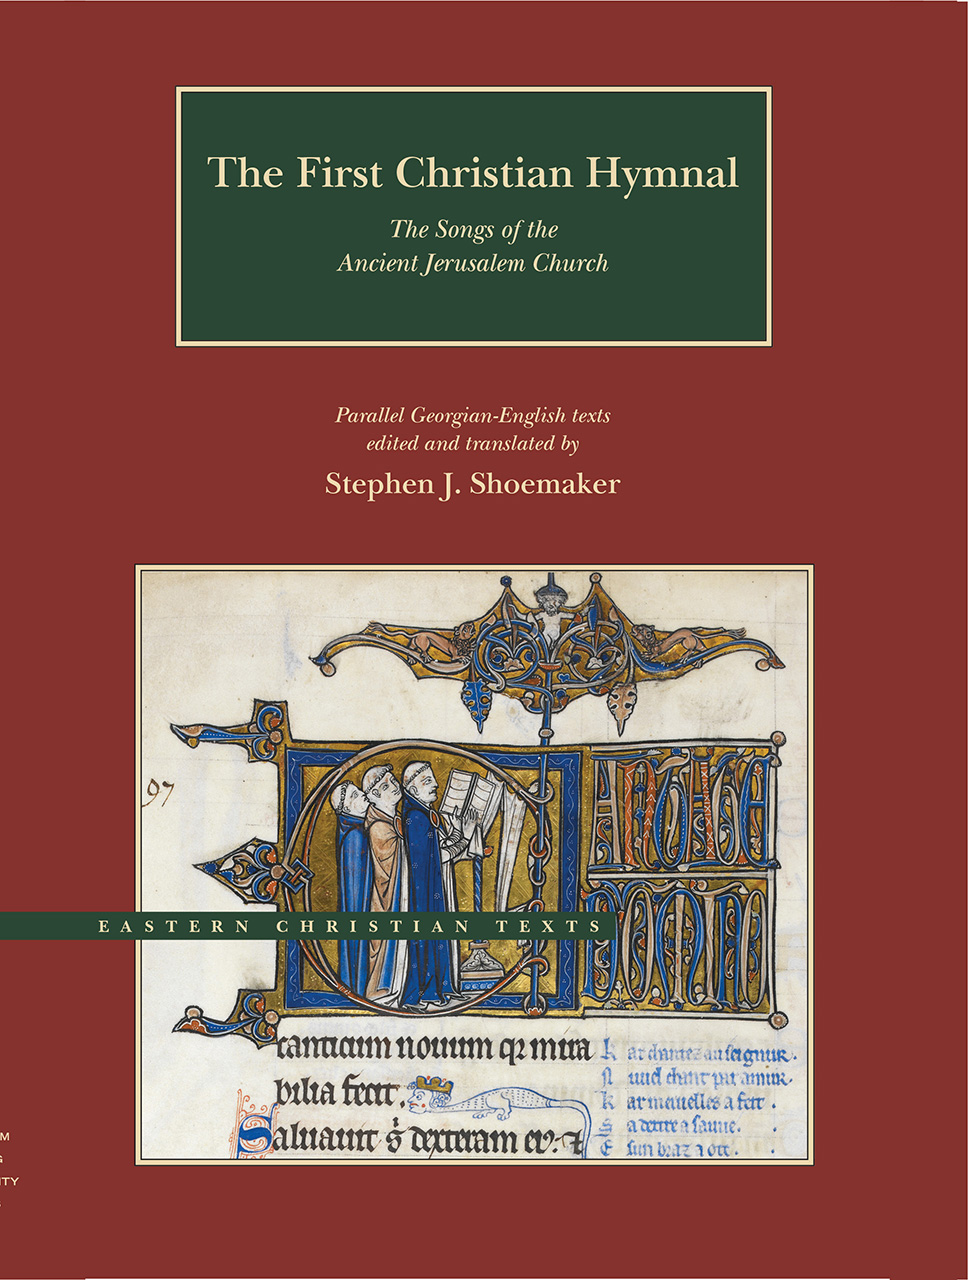 The First Christian Hymnal